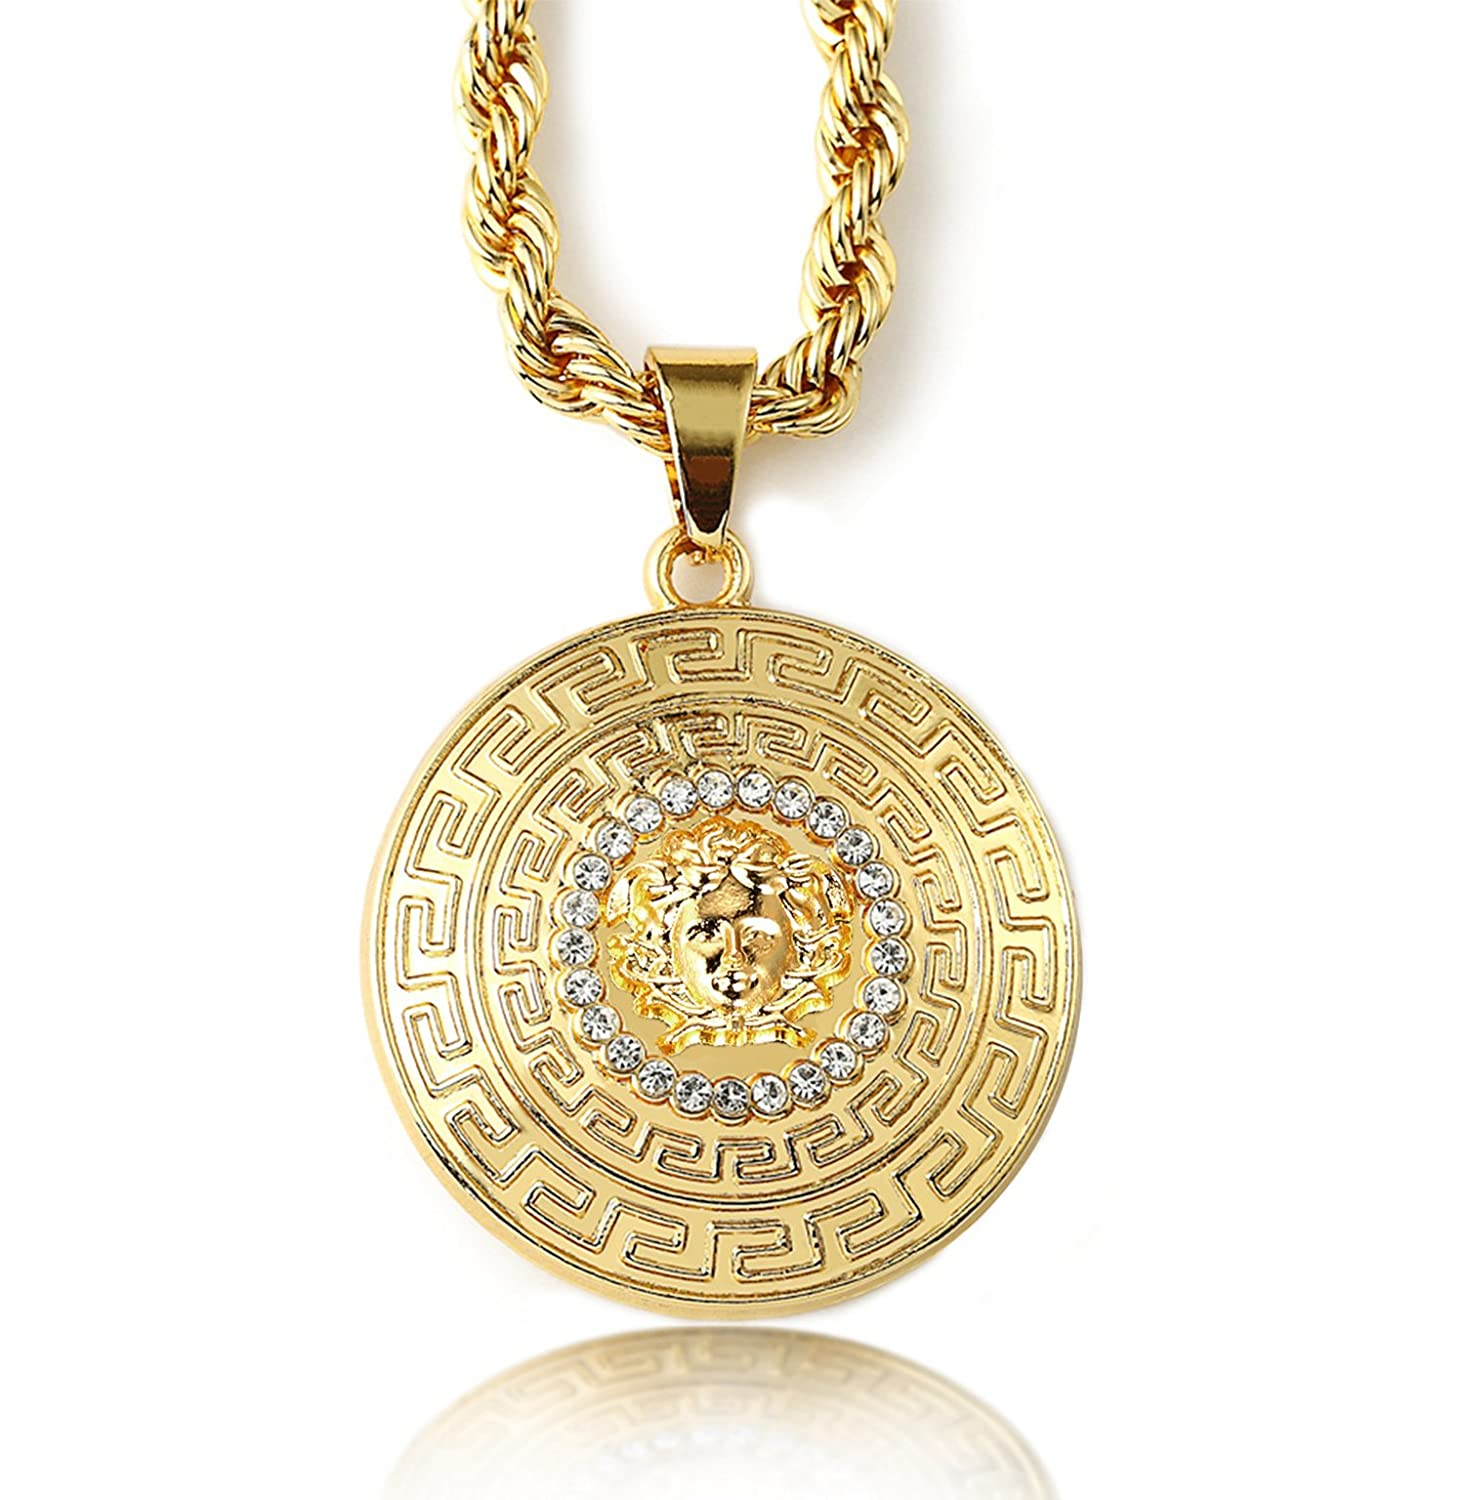 Halukakah medusa mens 18k stamp real gold plated 3d pendant halukakah medusa mens 18k stamp real gold plated 3d pendant necklace with free rope chain 30 thick 5mm amazon mozeypictures